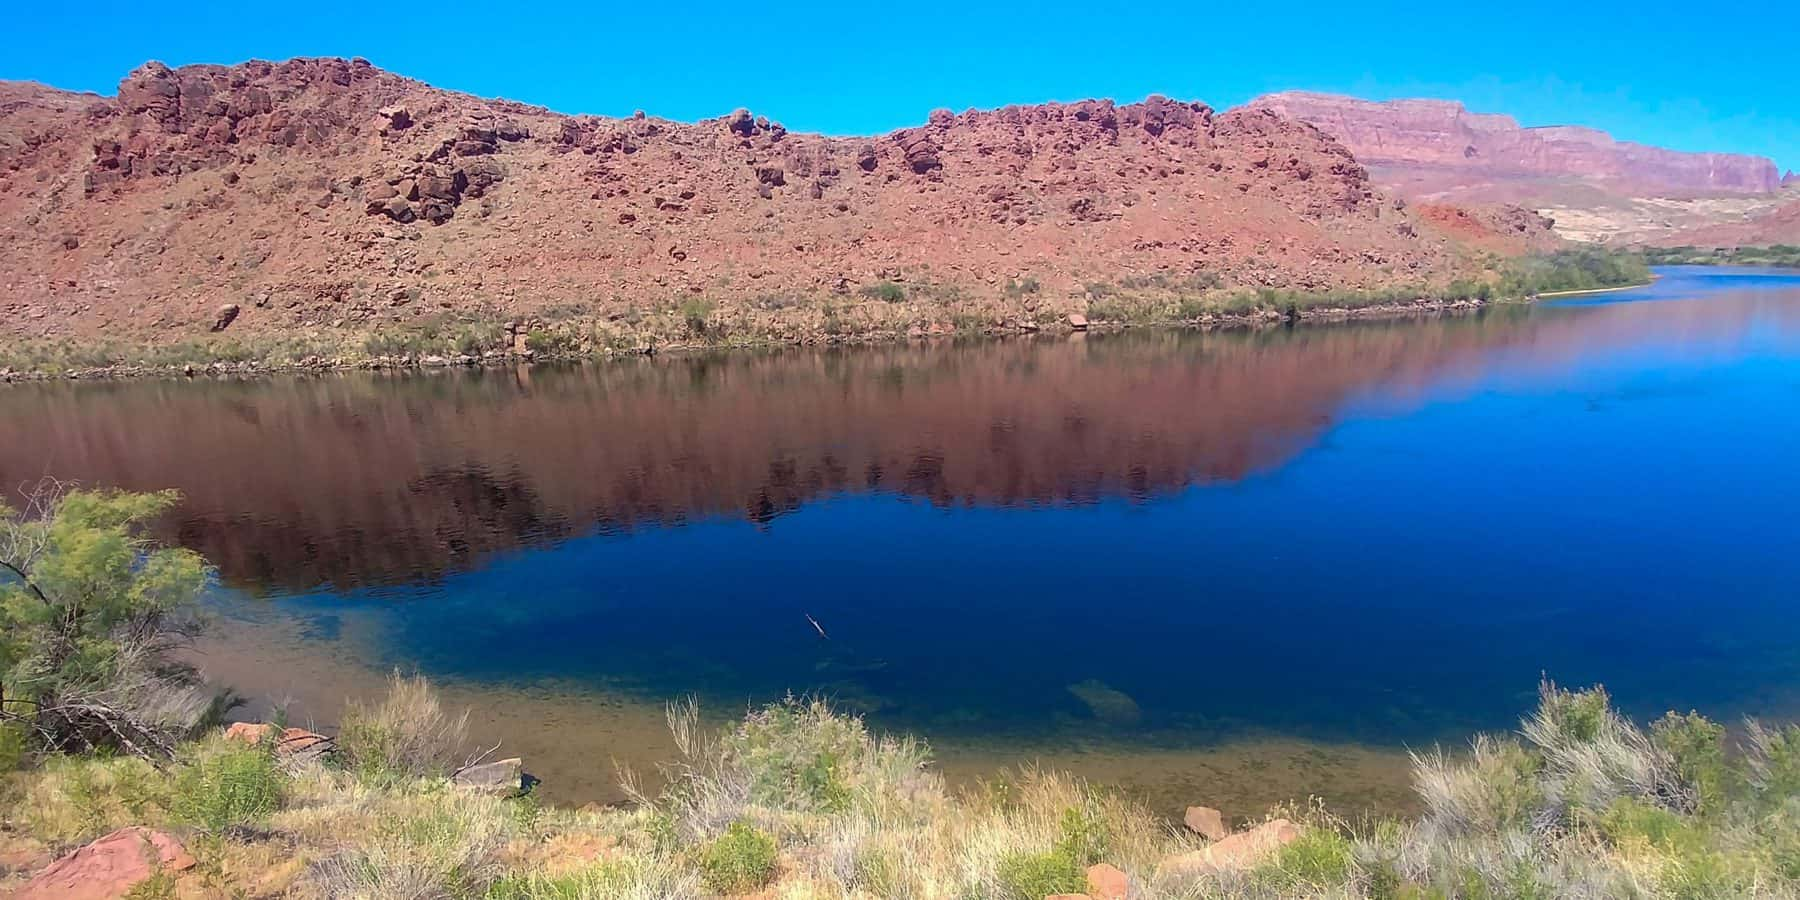 colorado river at lee's ferry division of glen canyon national recreation area